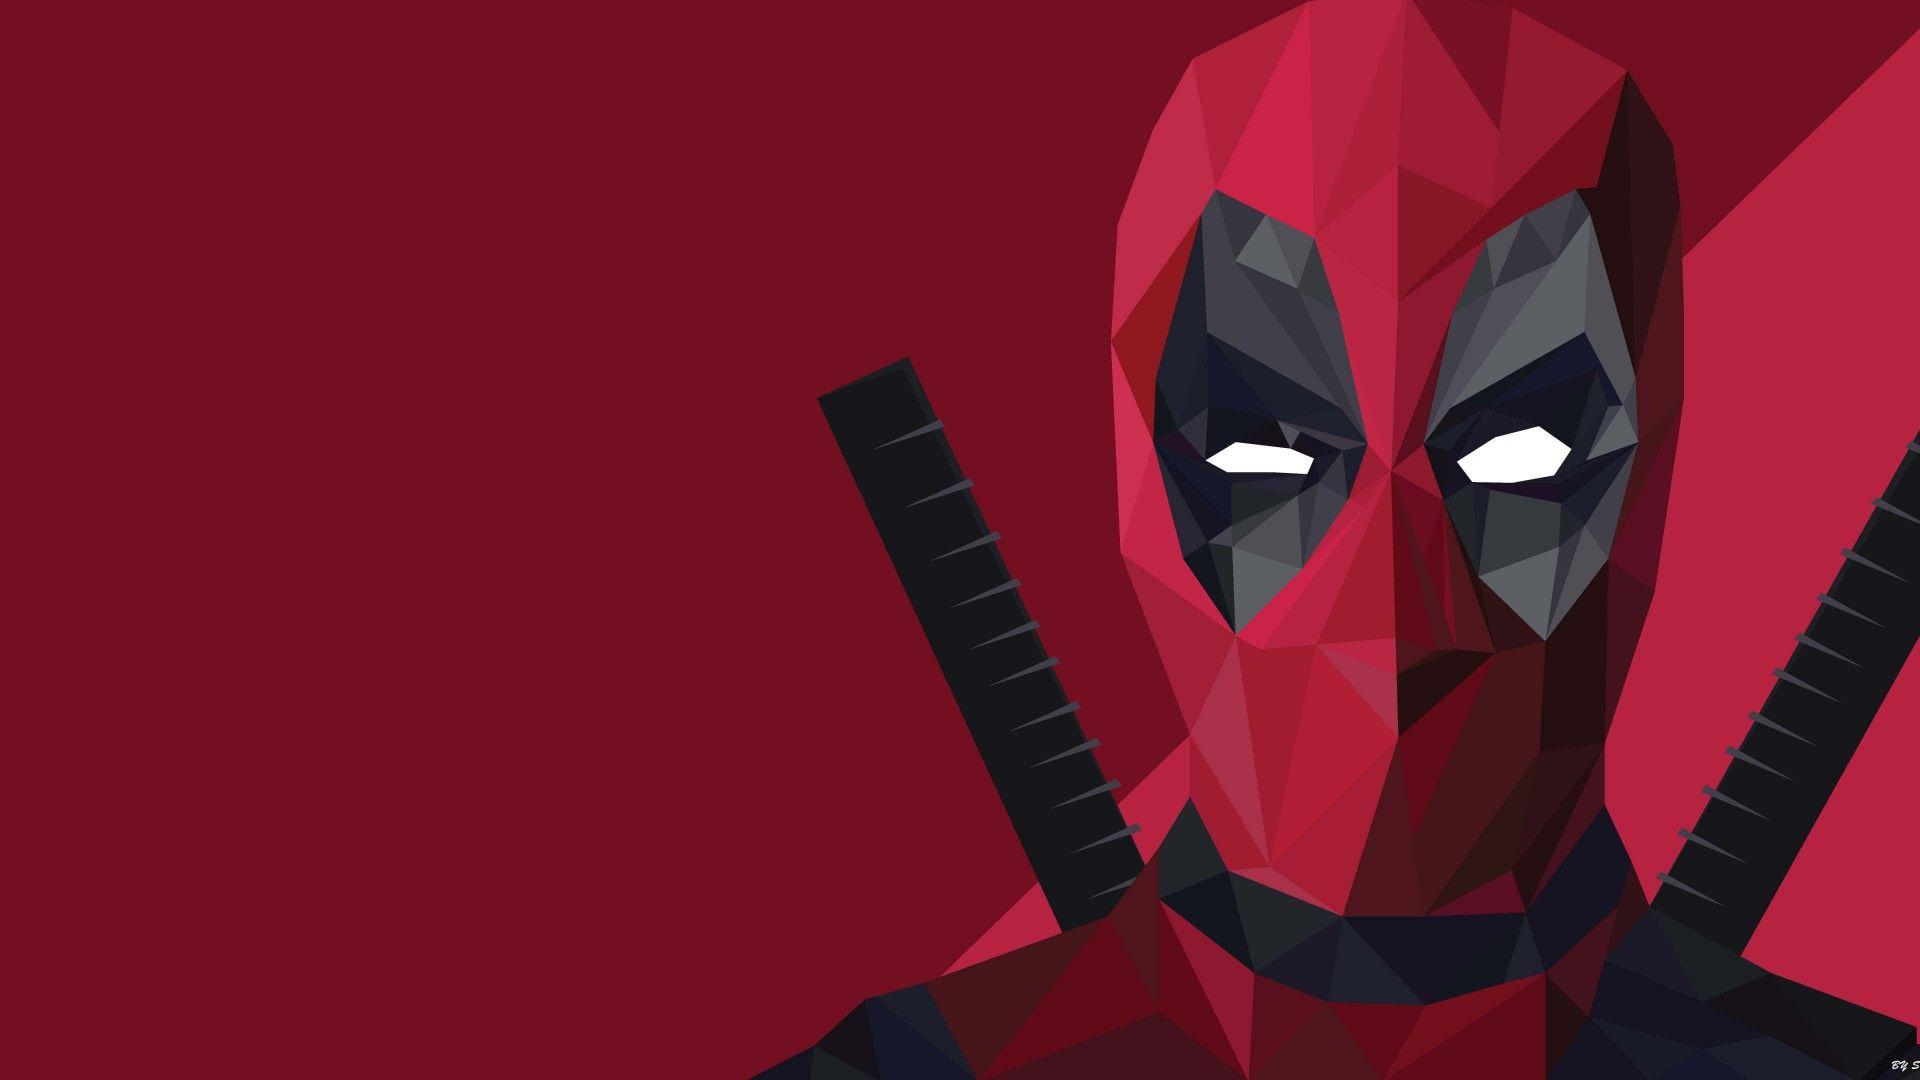 deadpool wallpapers 1920x1080 hd